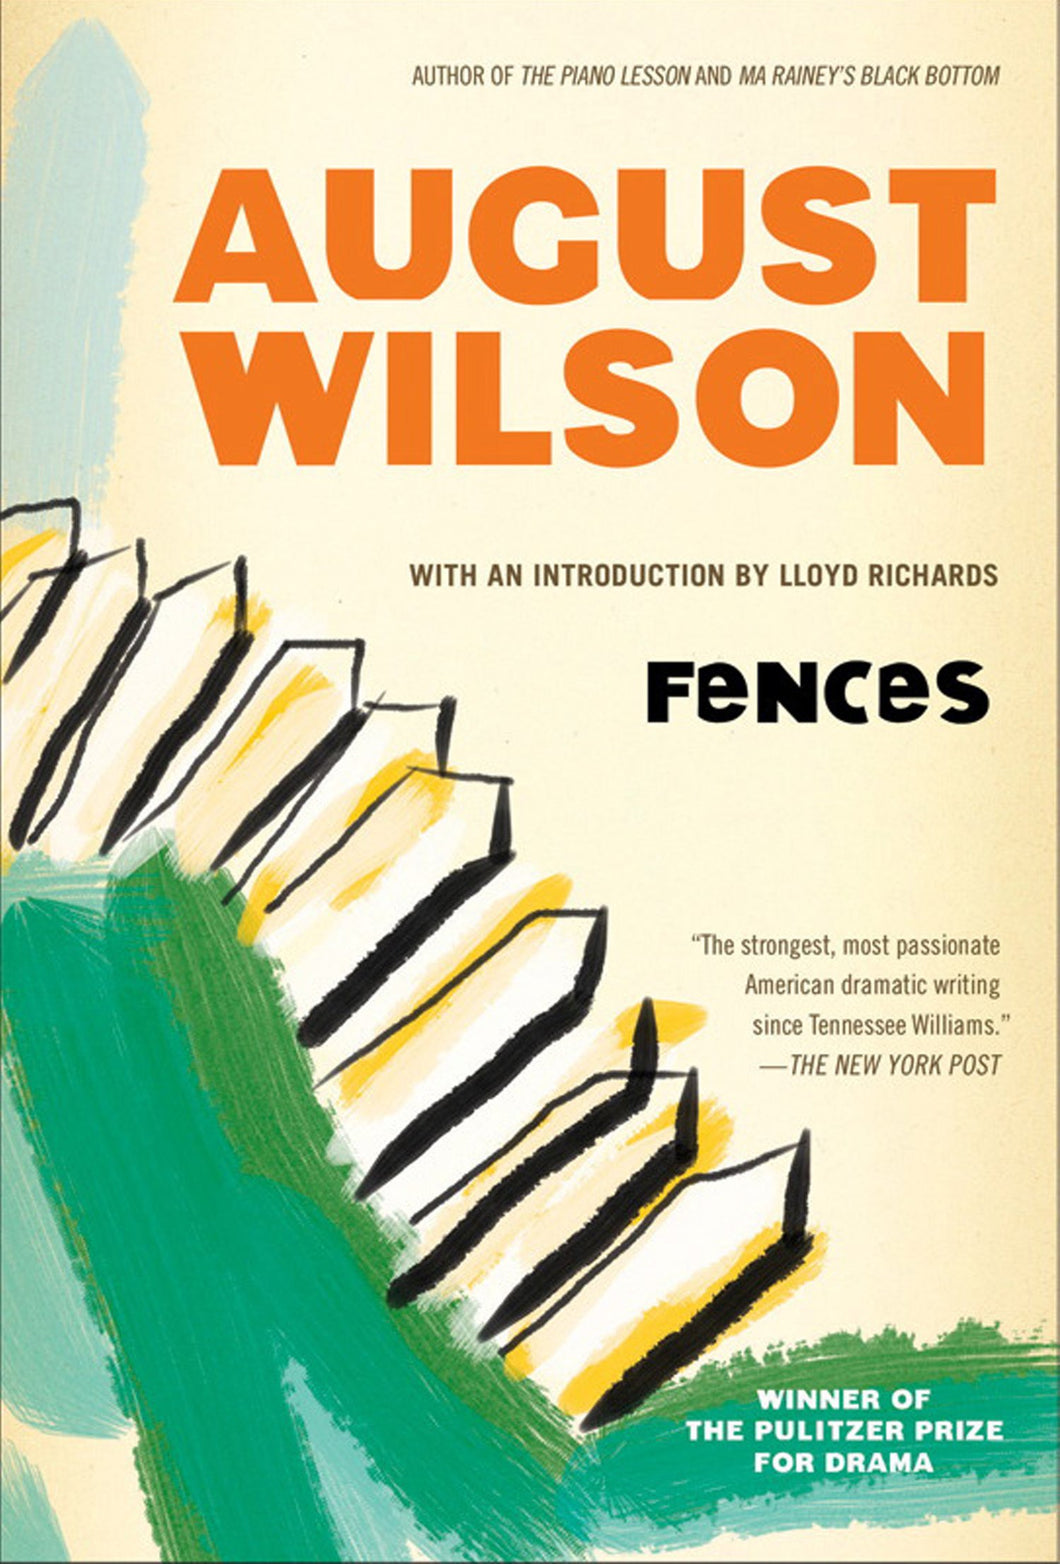 Fences: A Play by August Wilson